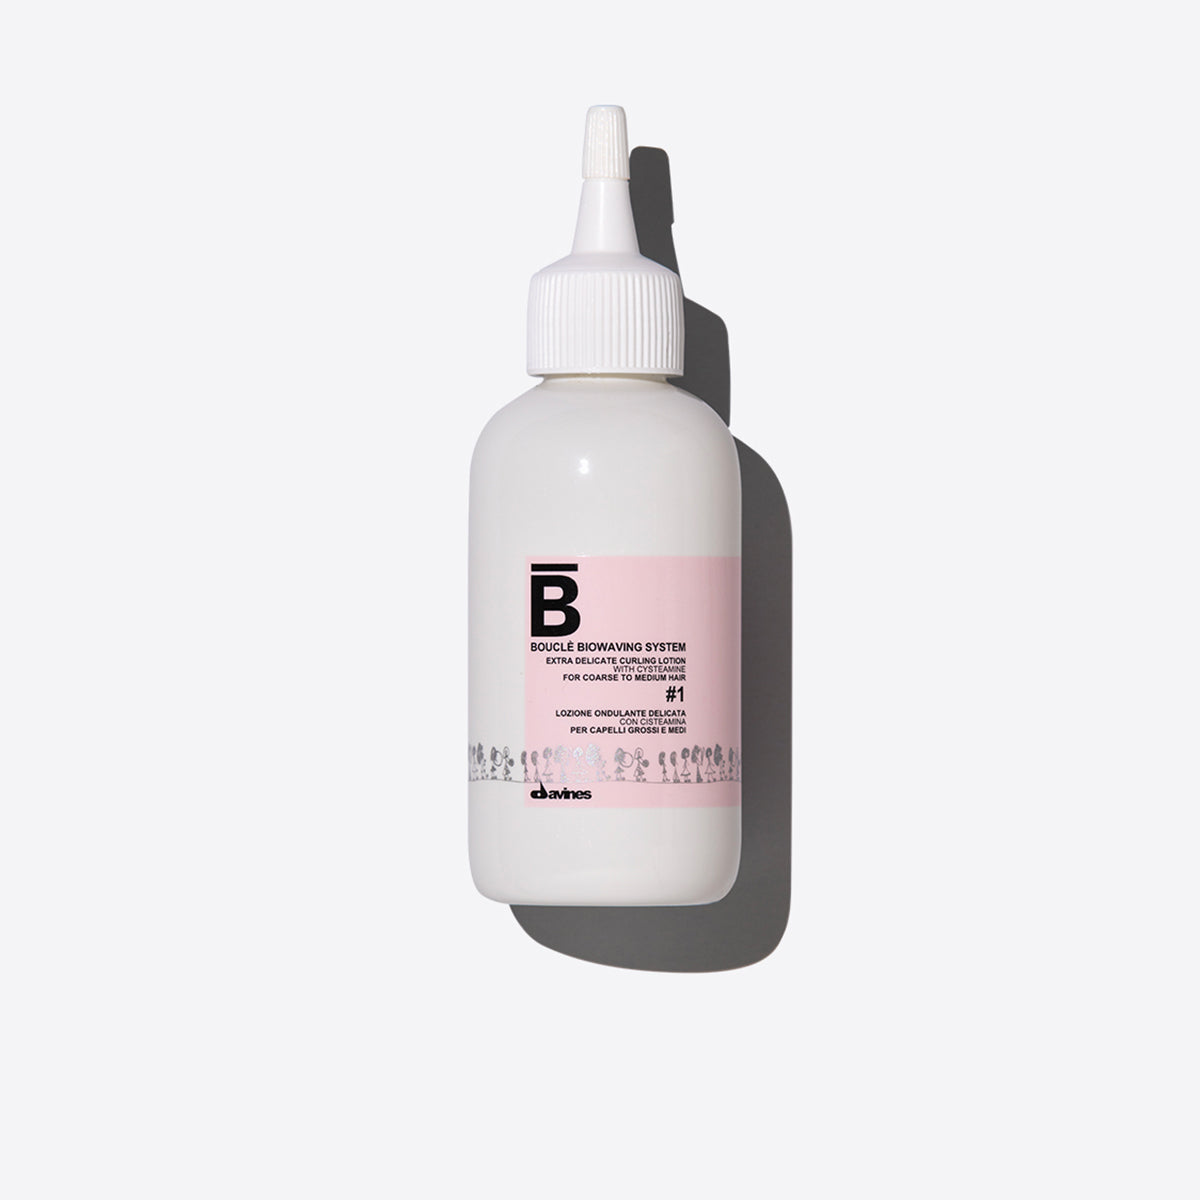 Extra Delicate Curling Lotion 1 1  100 ml / 3,3 fl.oz.Davines